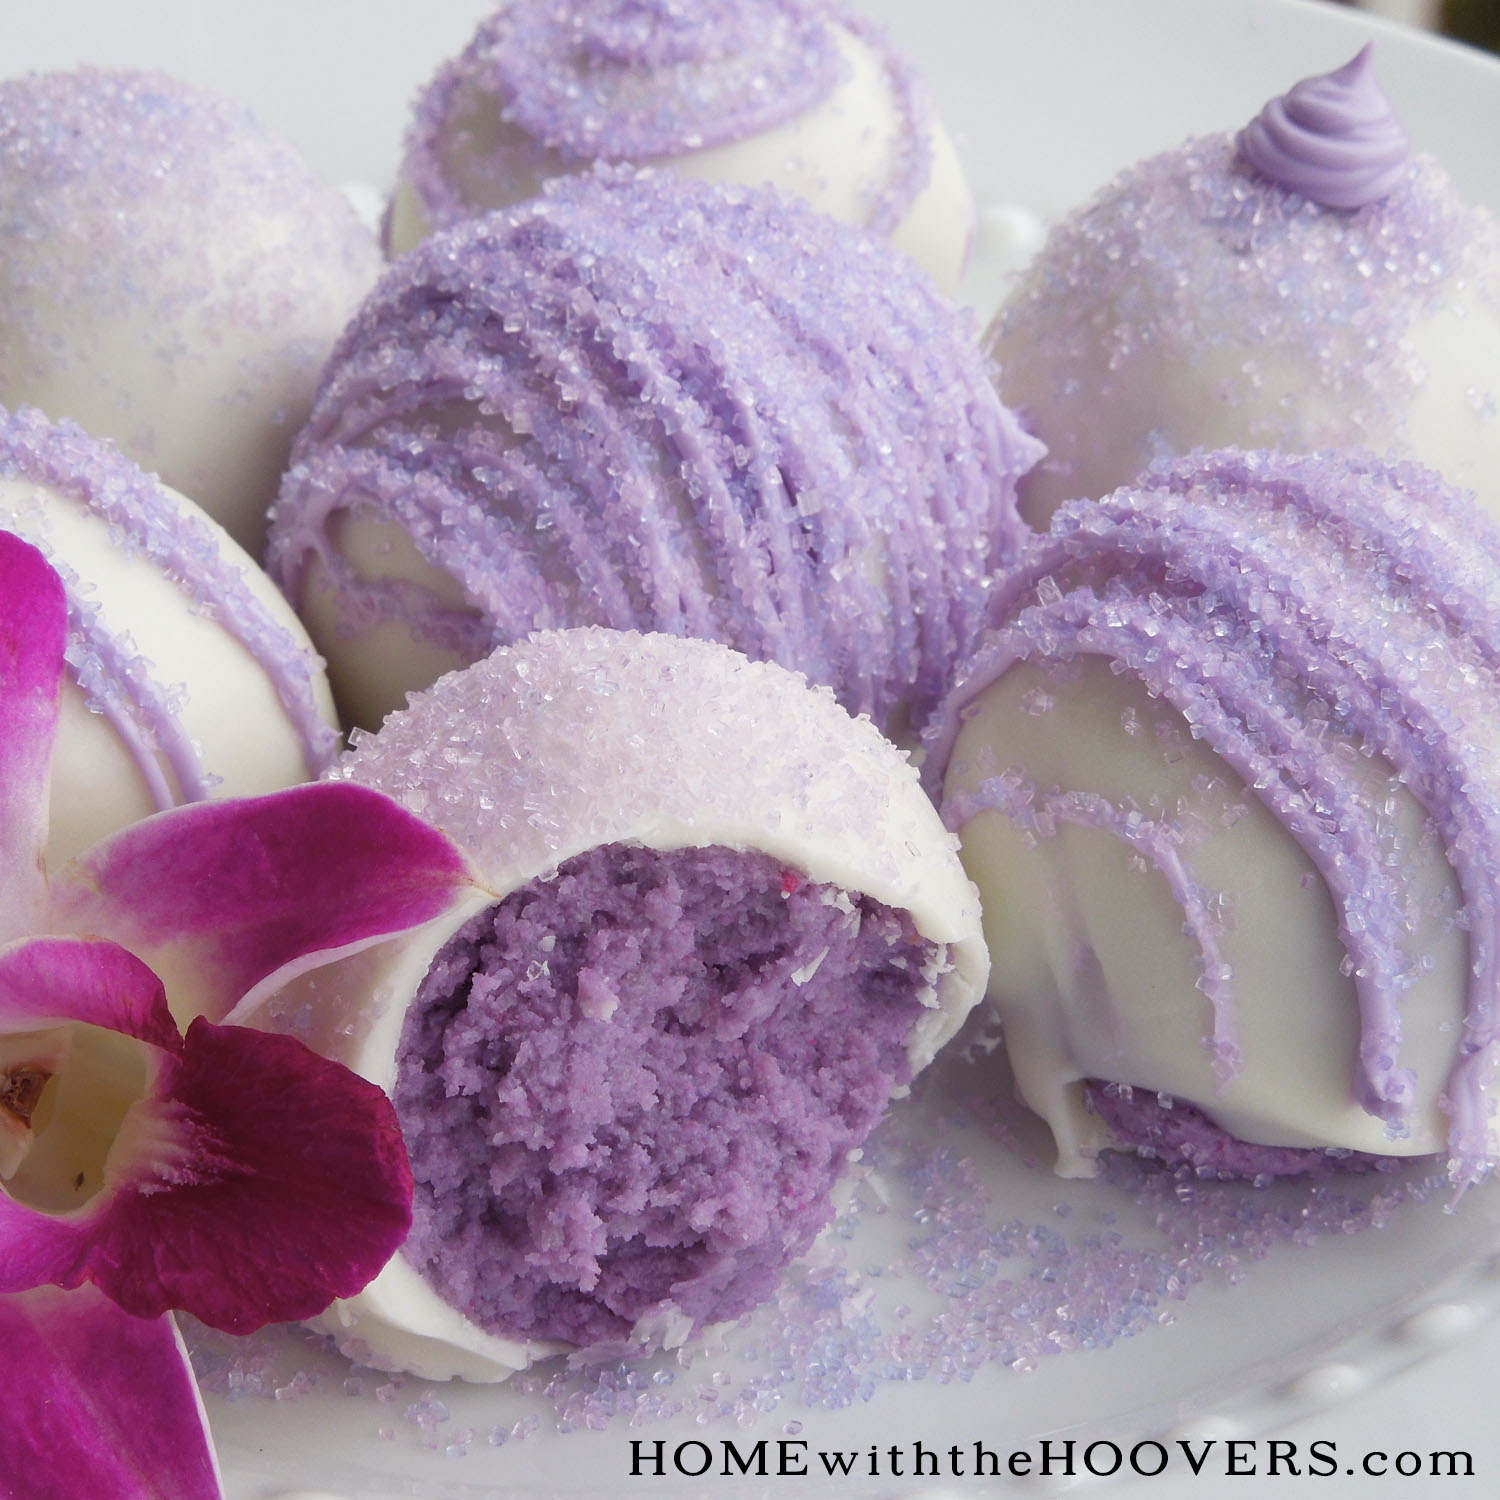 How To Make Cake Balls With Cake Mix And Icing